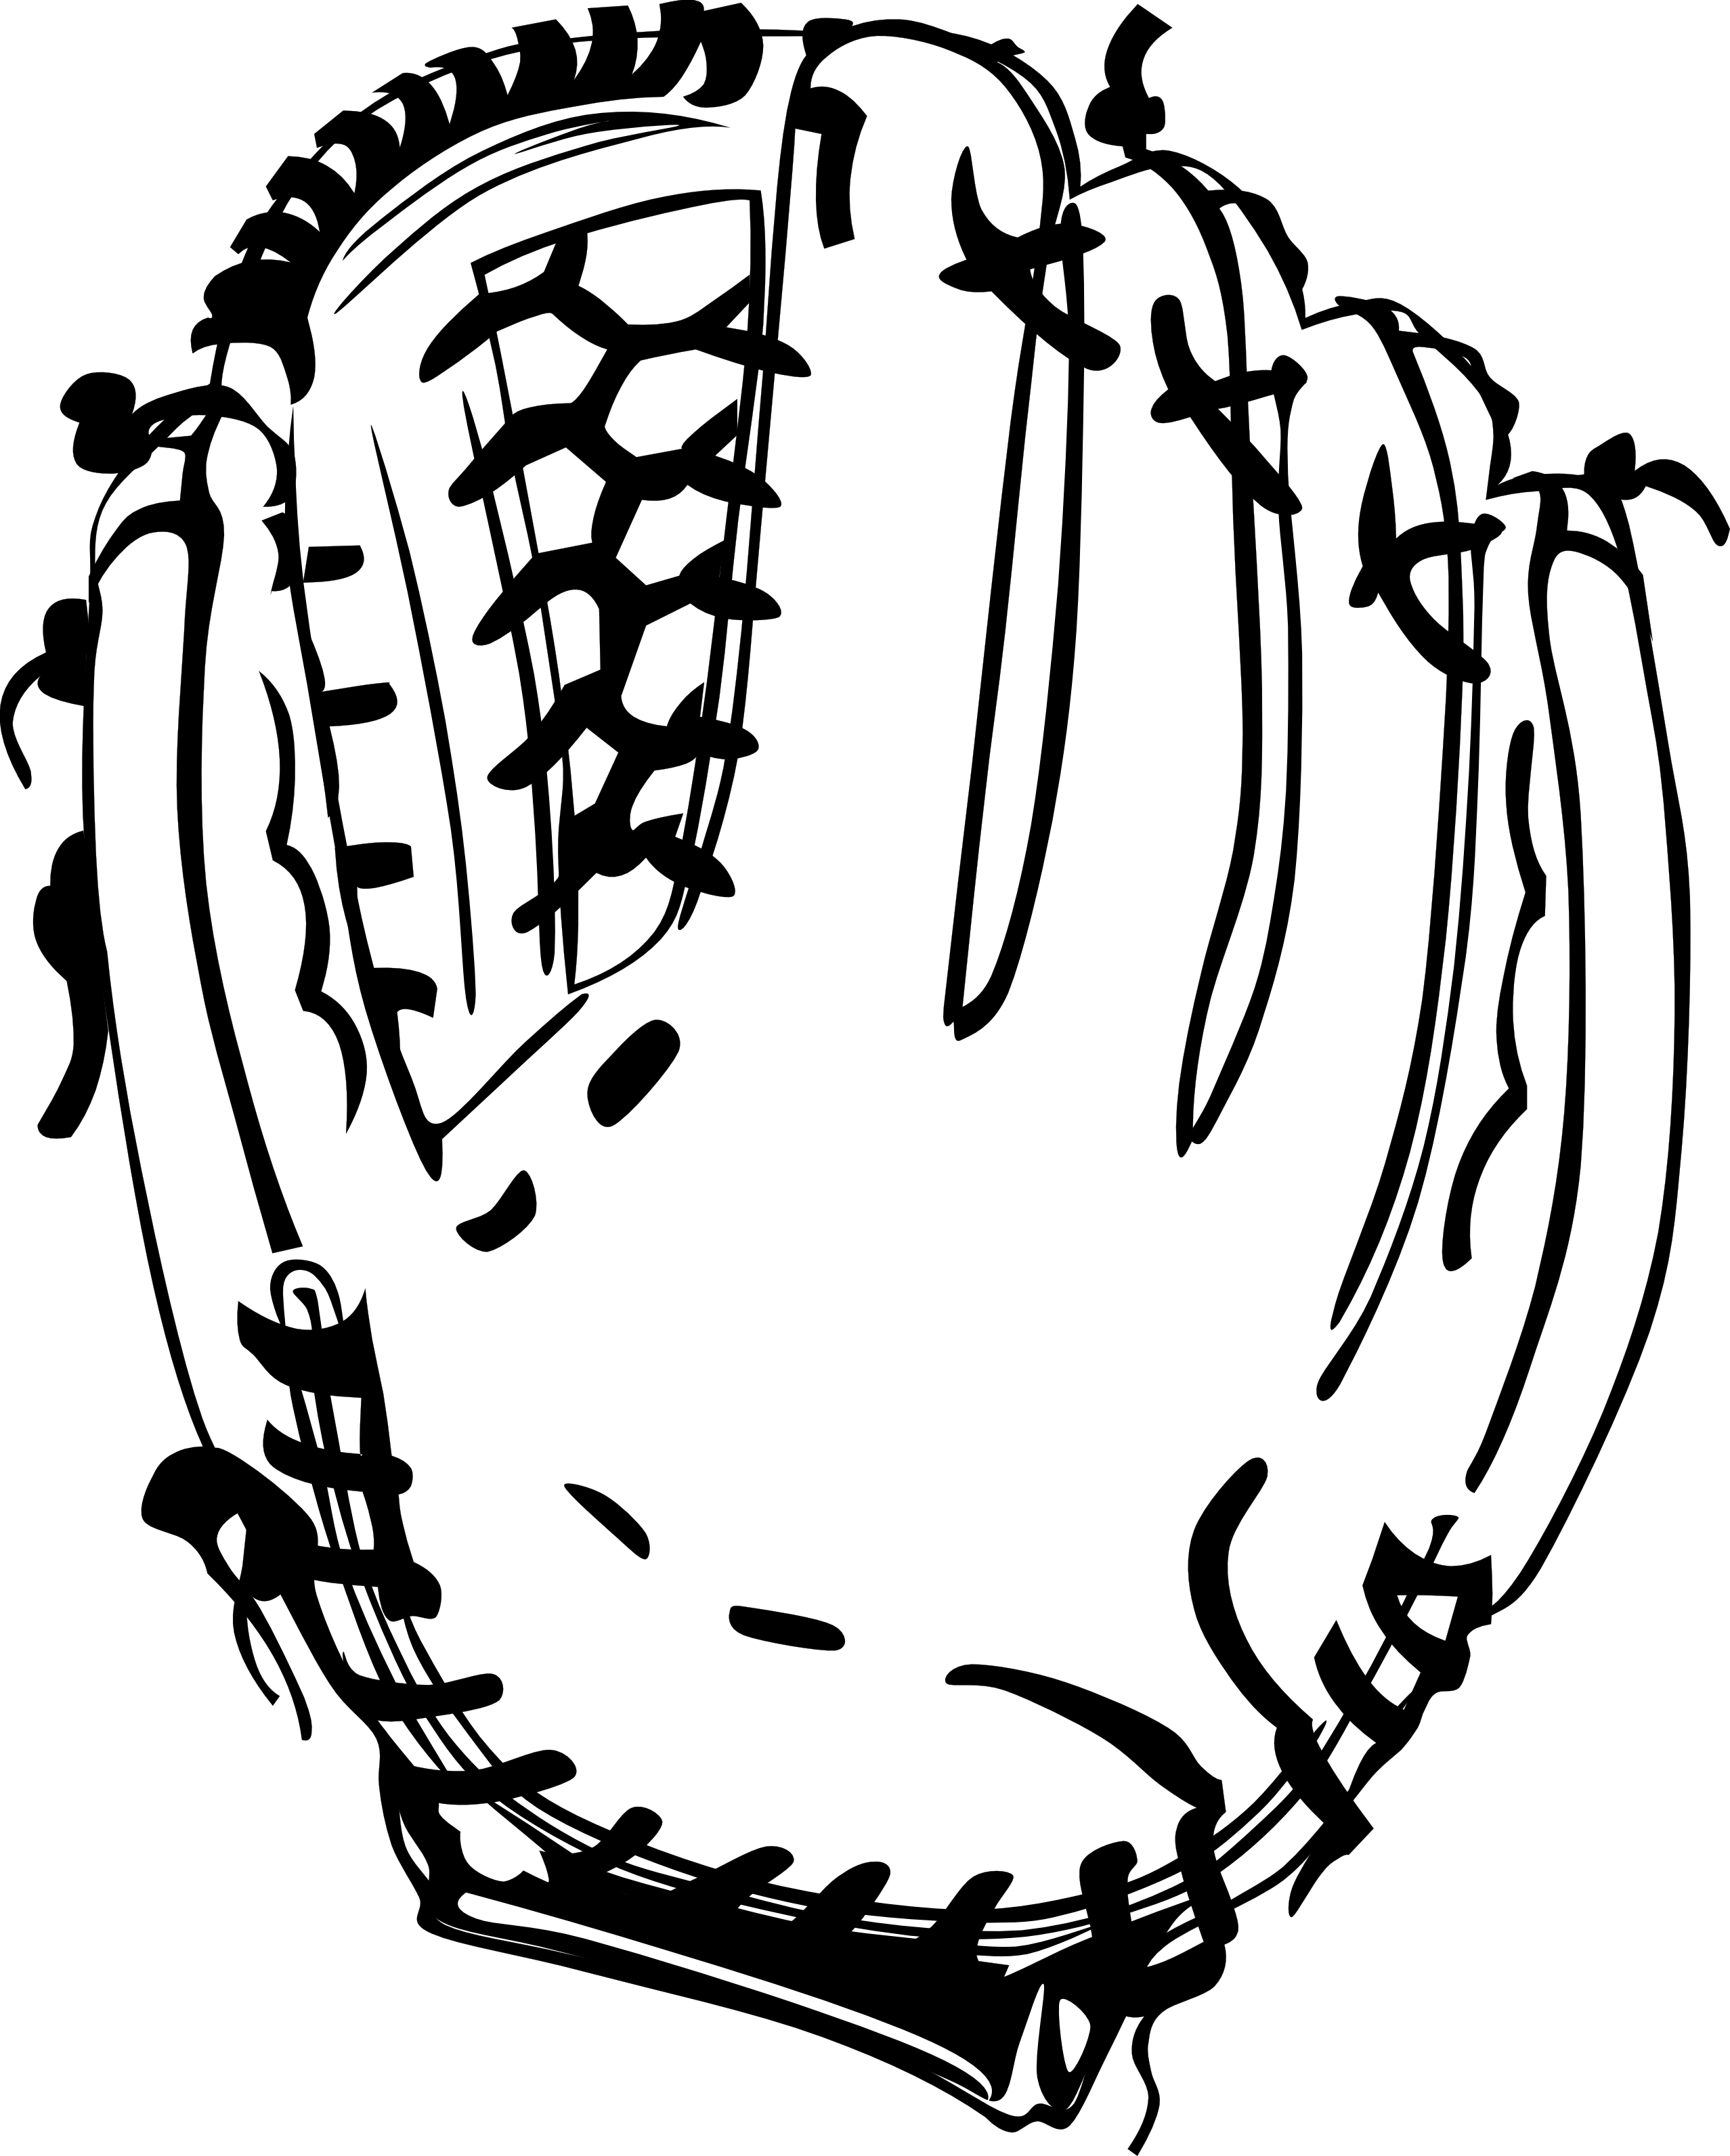 Baseball glove black white. Mittens clipart mitt